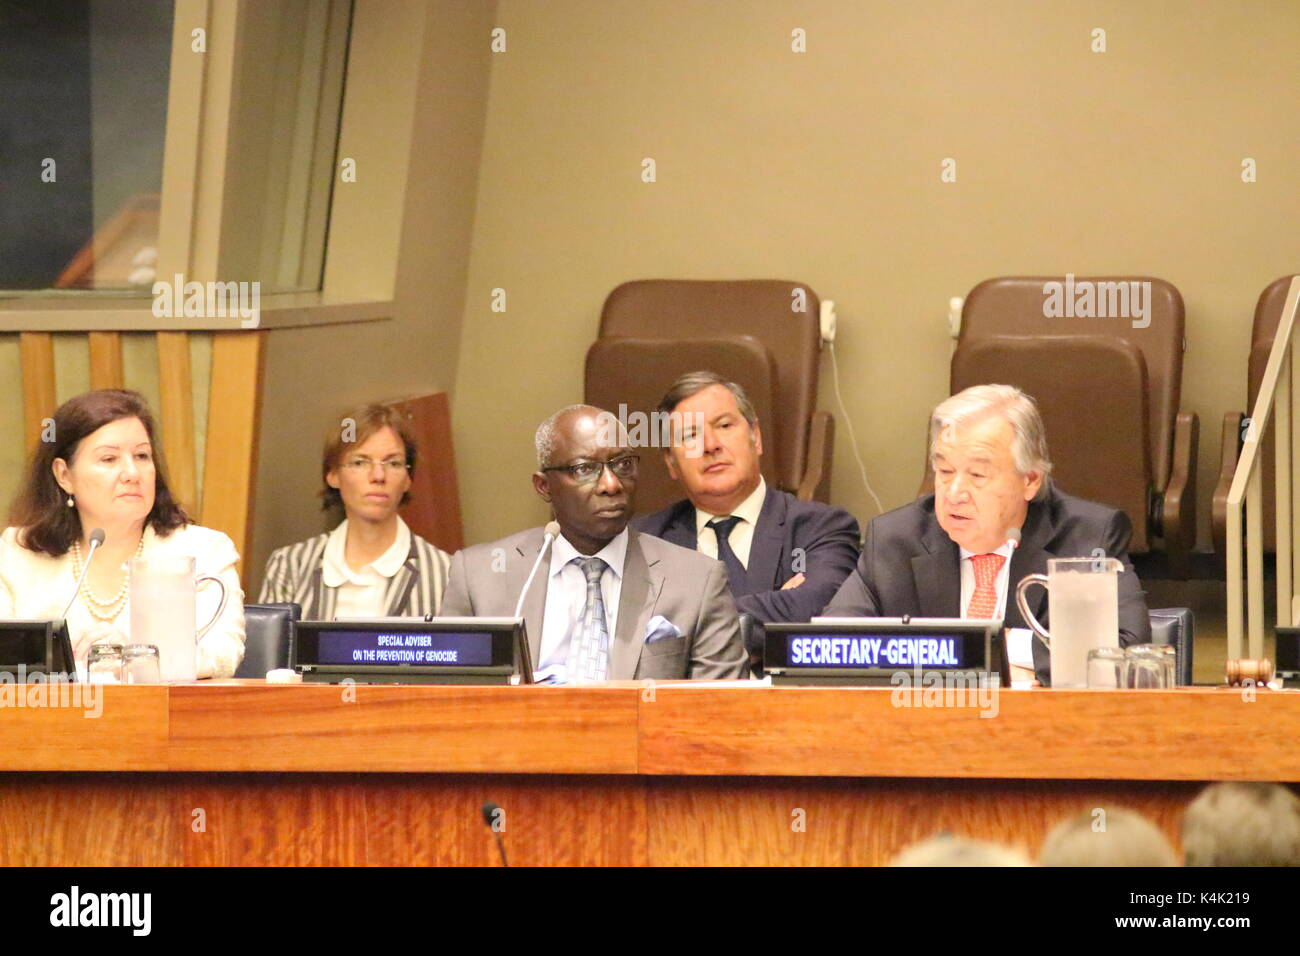 UN, New York, USA. 6th Sept, 2017. UN Sec-Gen Antonio Guterres spoke on Responsibility to Protect, day after his Stock Photo